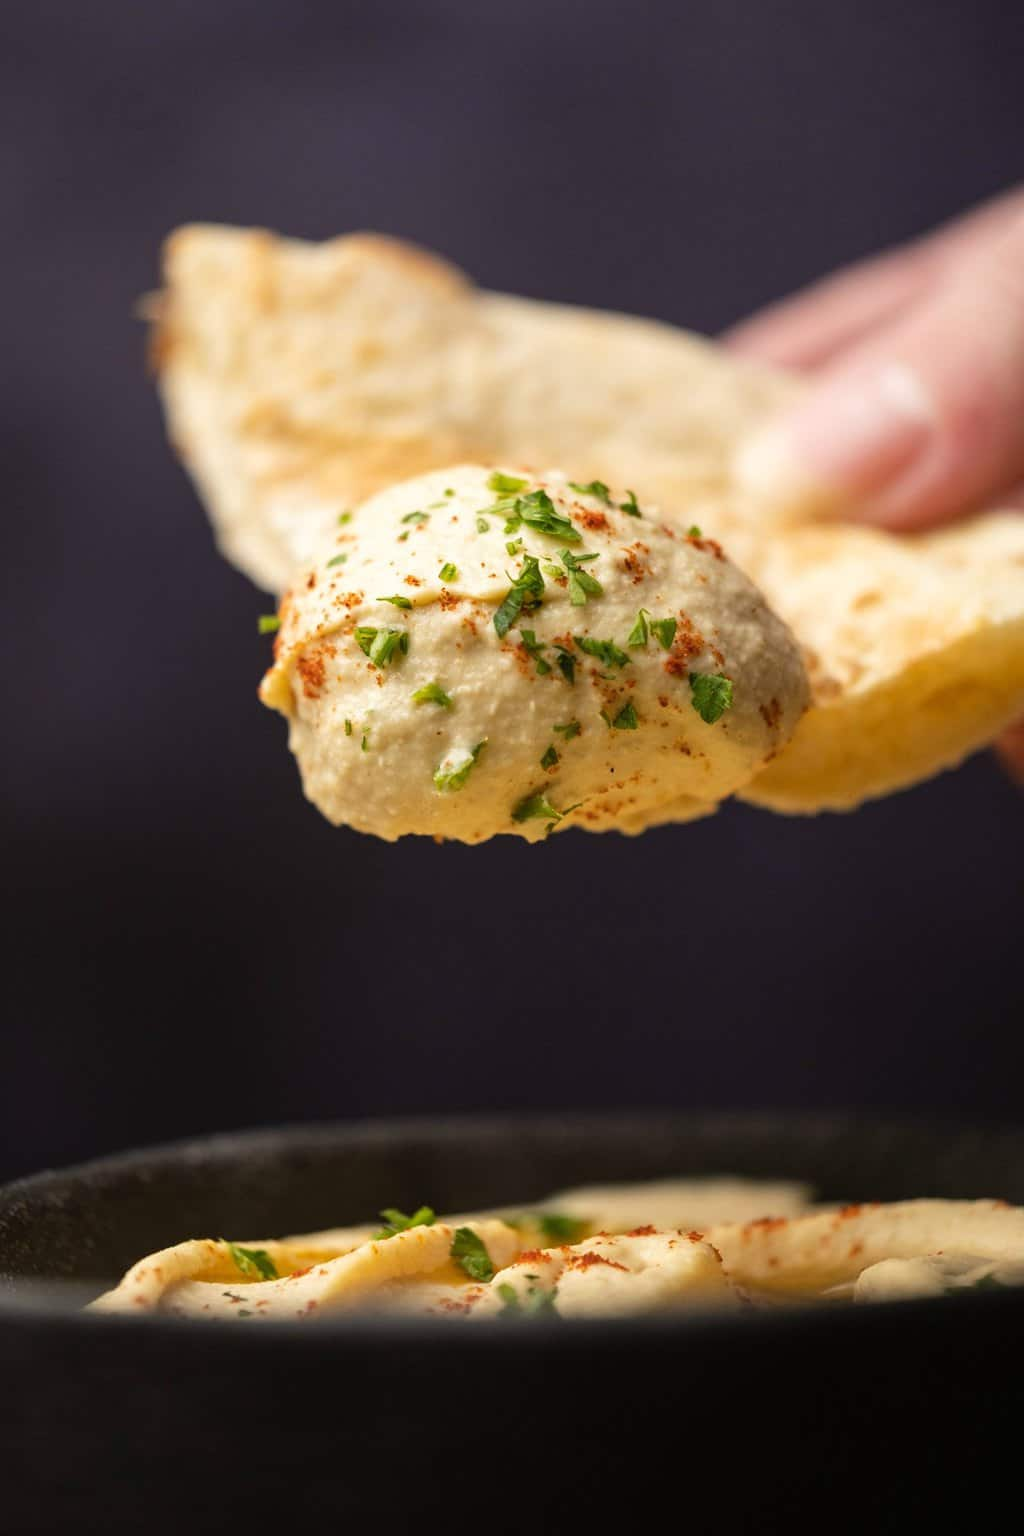 A pita bread dipped into a bowl of hummus.